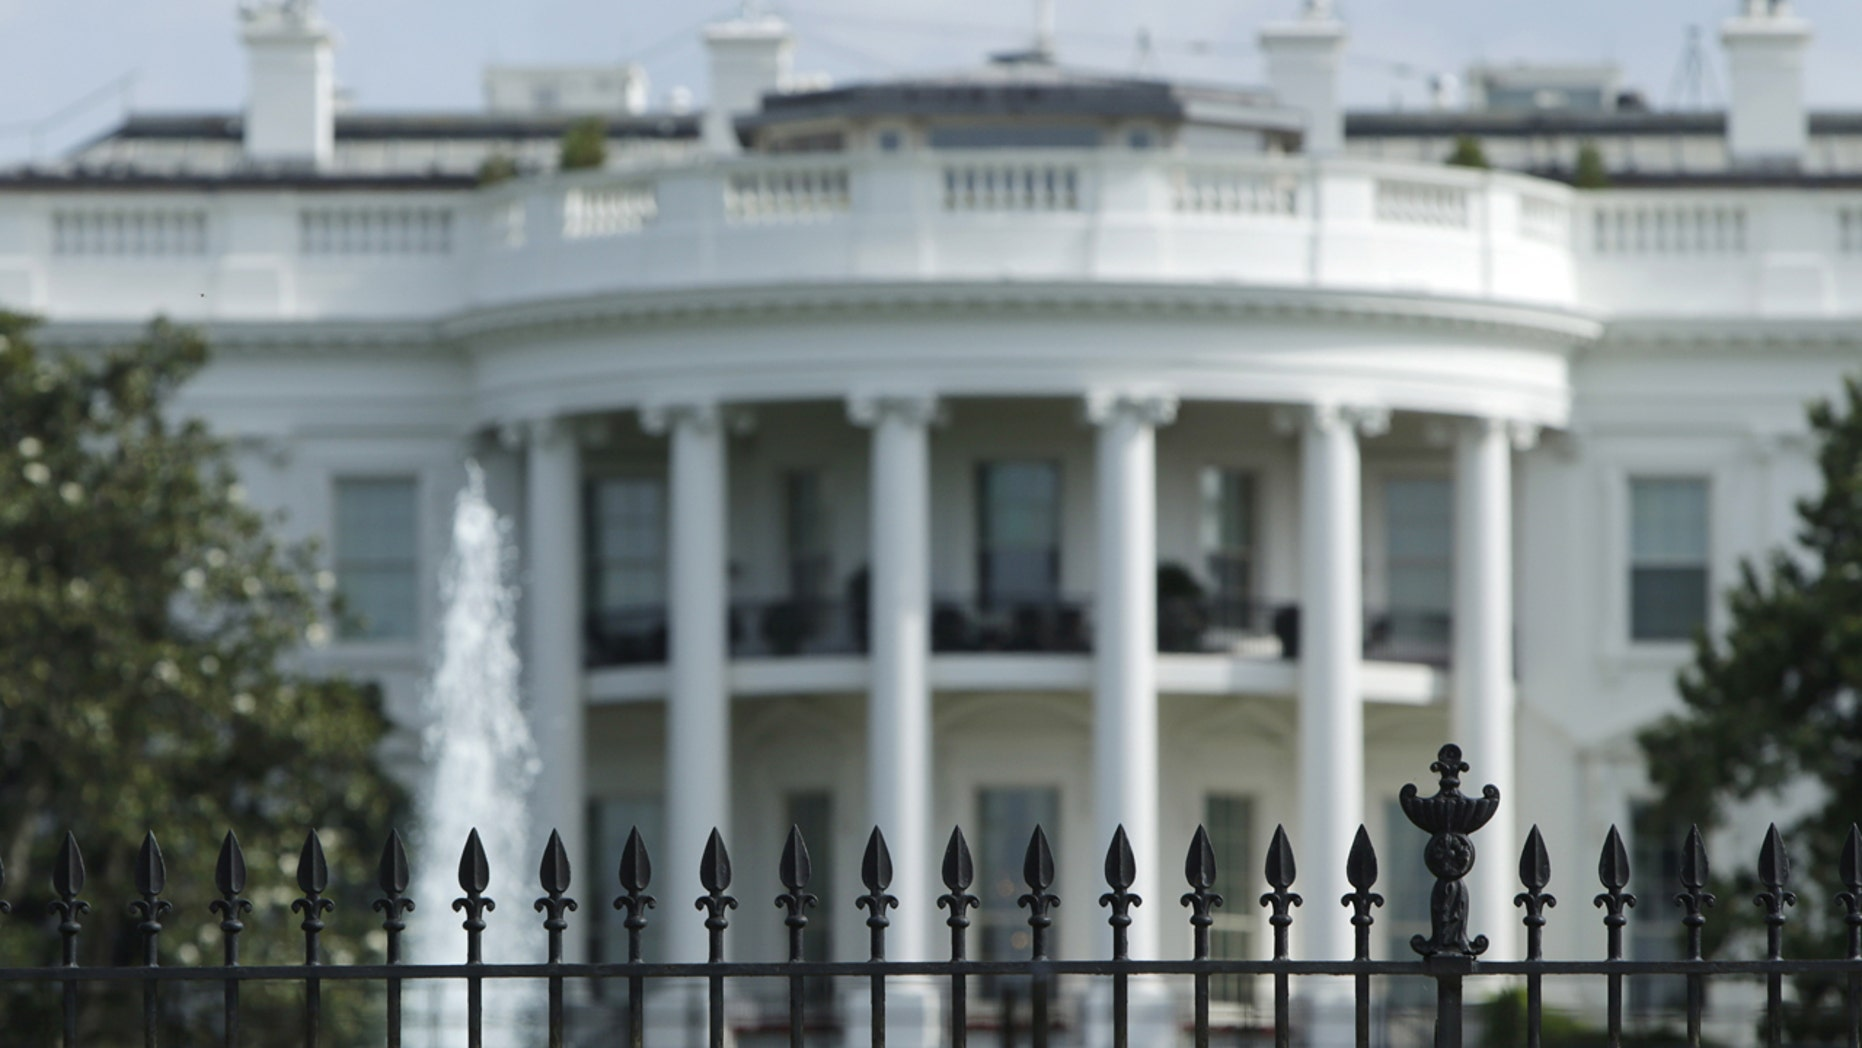 The original South Lawn security fencing is seen at the White House in Washington May 28, 2015.